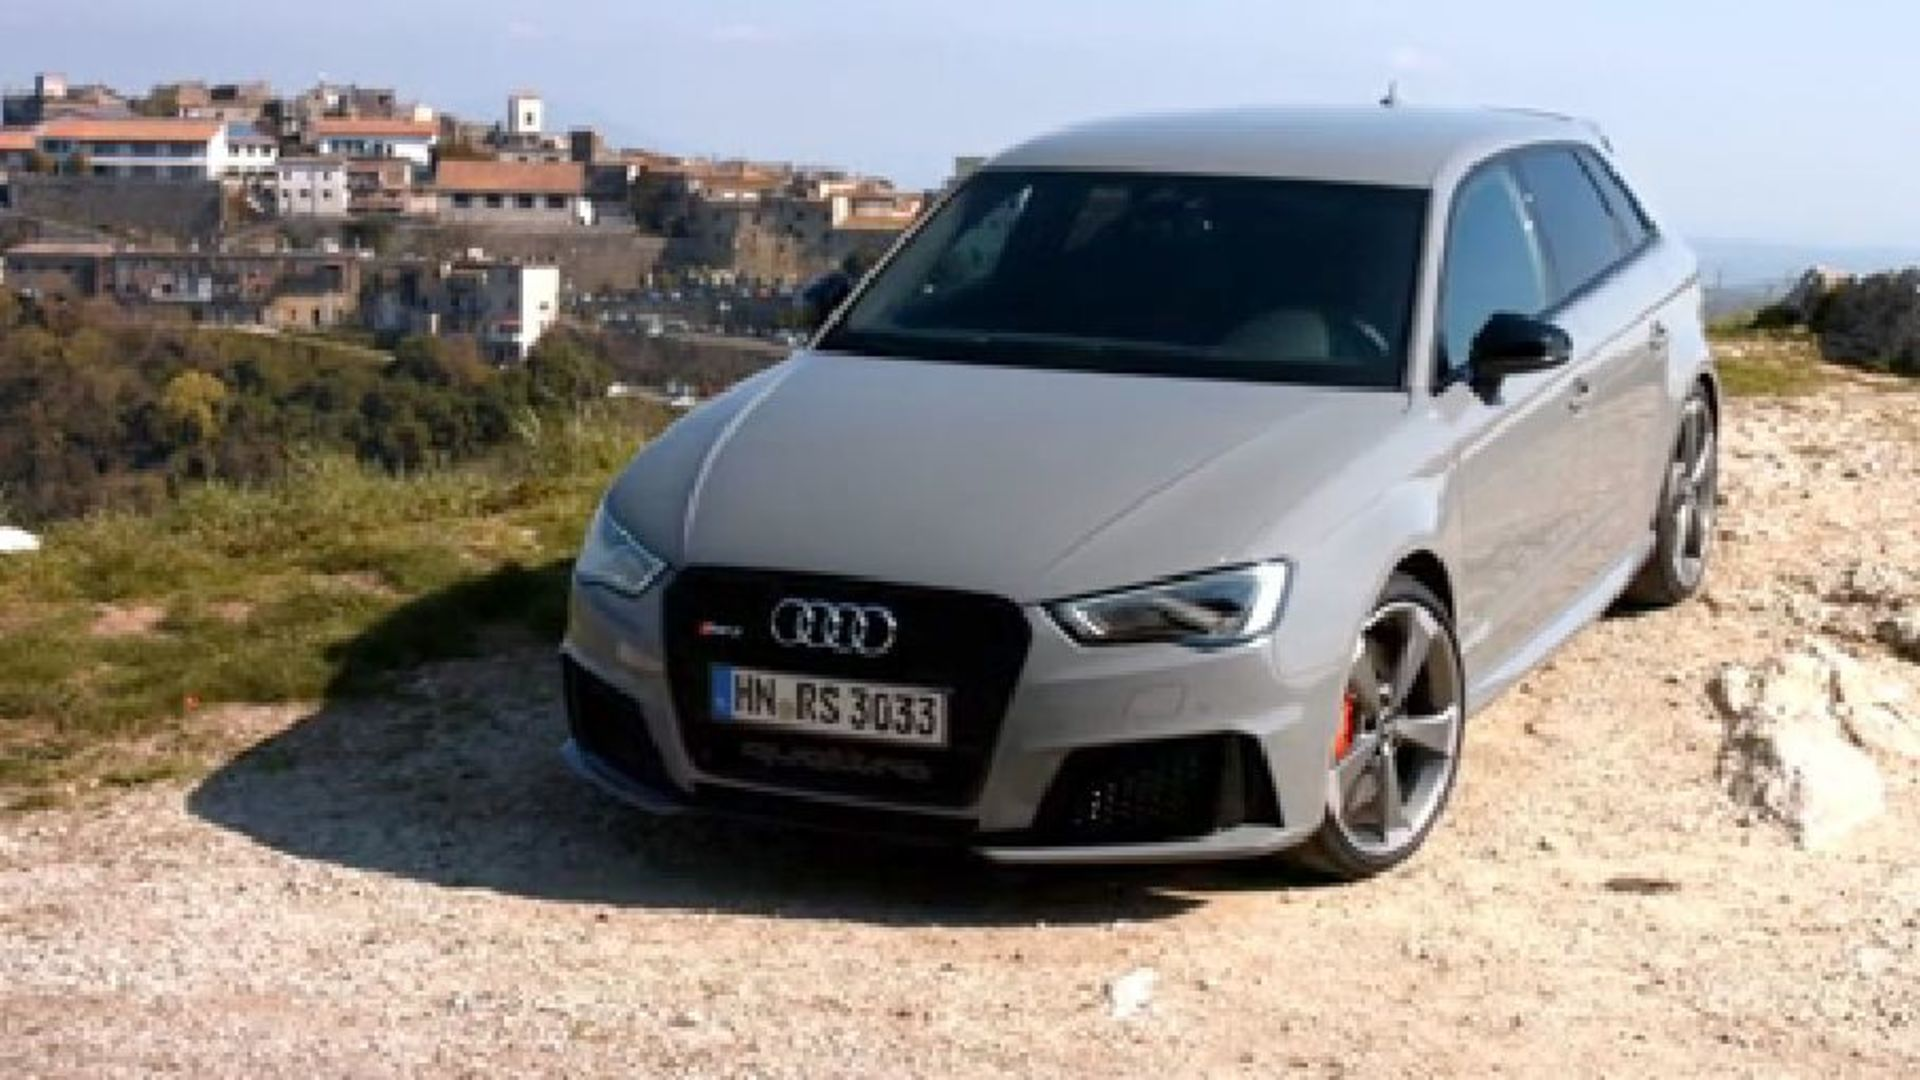 Power in compact form – the new Audi RS 3 Sportback Trailer